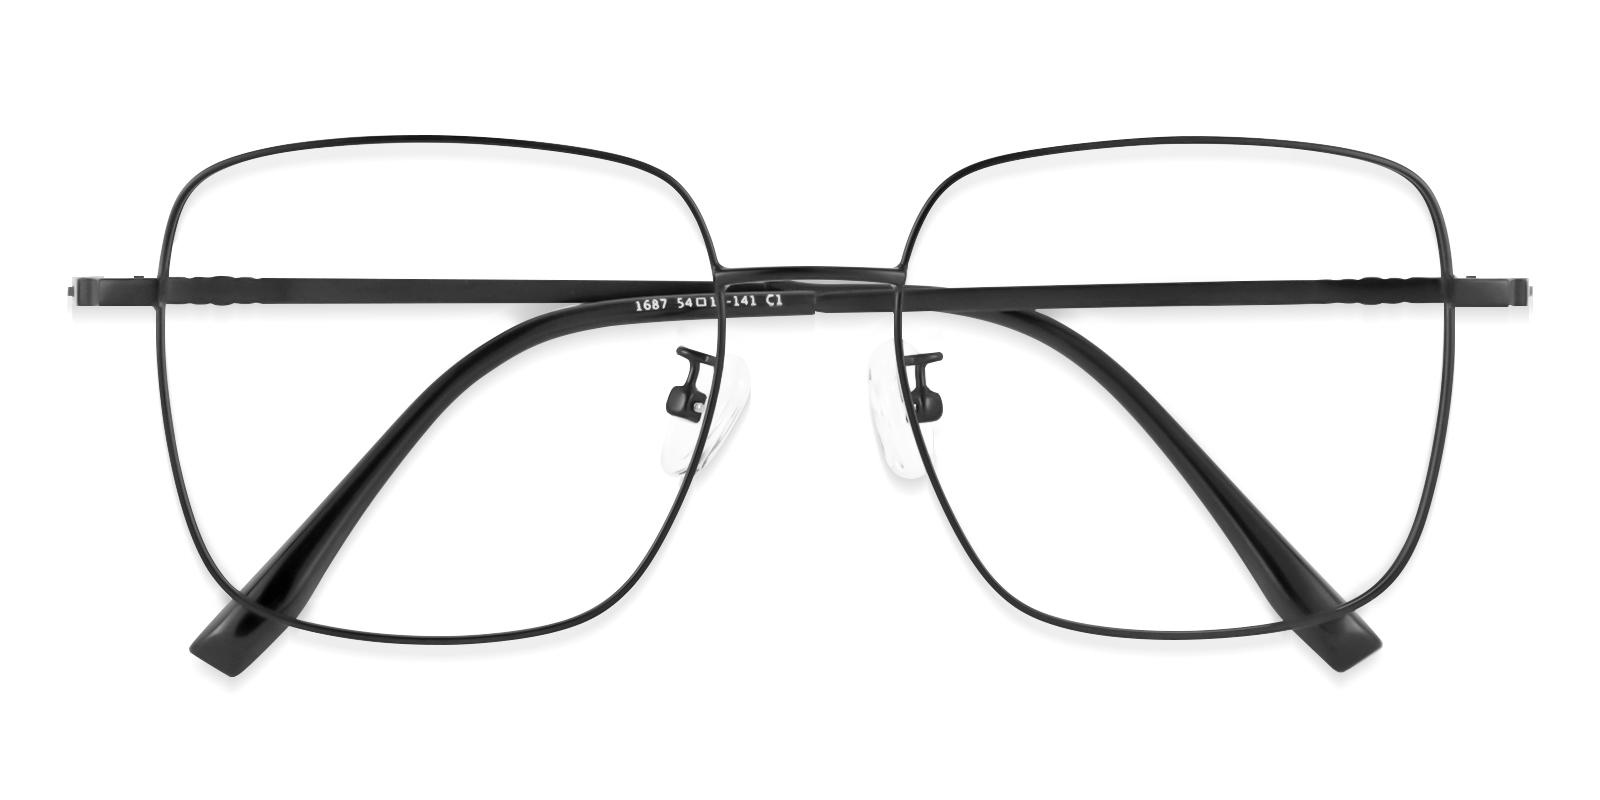 Rolita Black Metal Eyeglasses , Fashion , NosePads Frames from ABBE Glasses